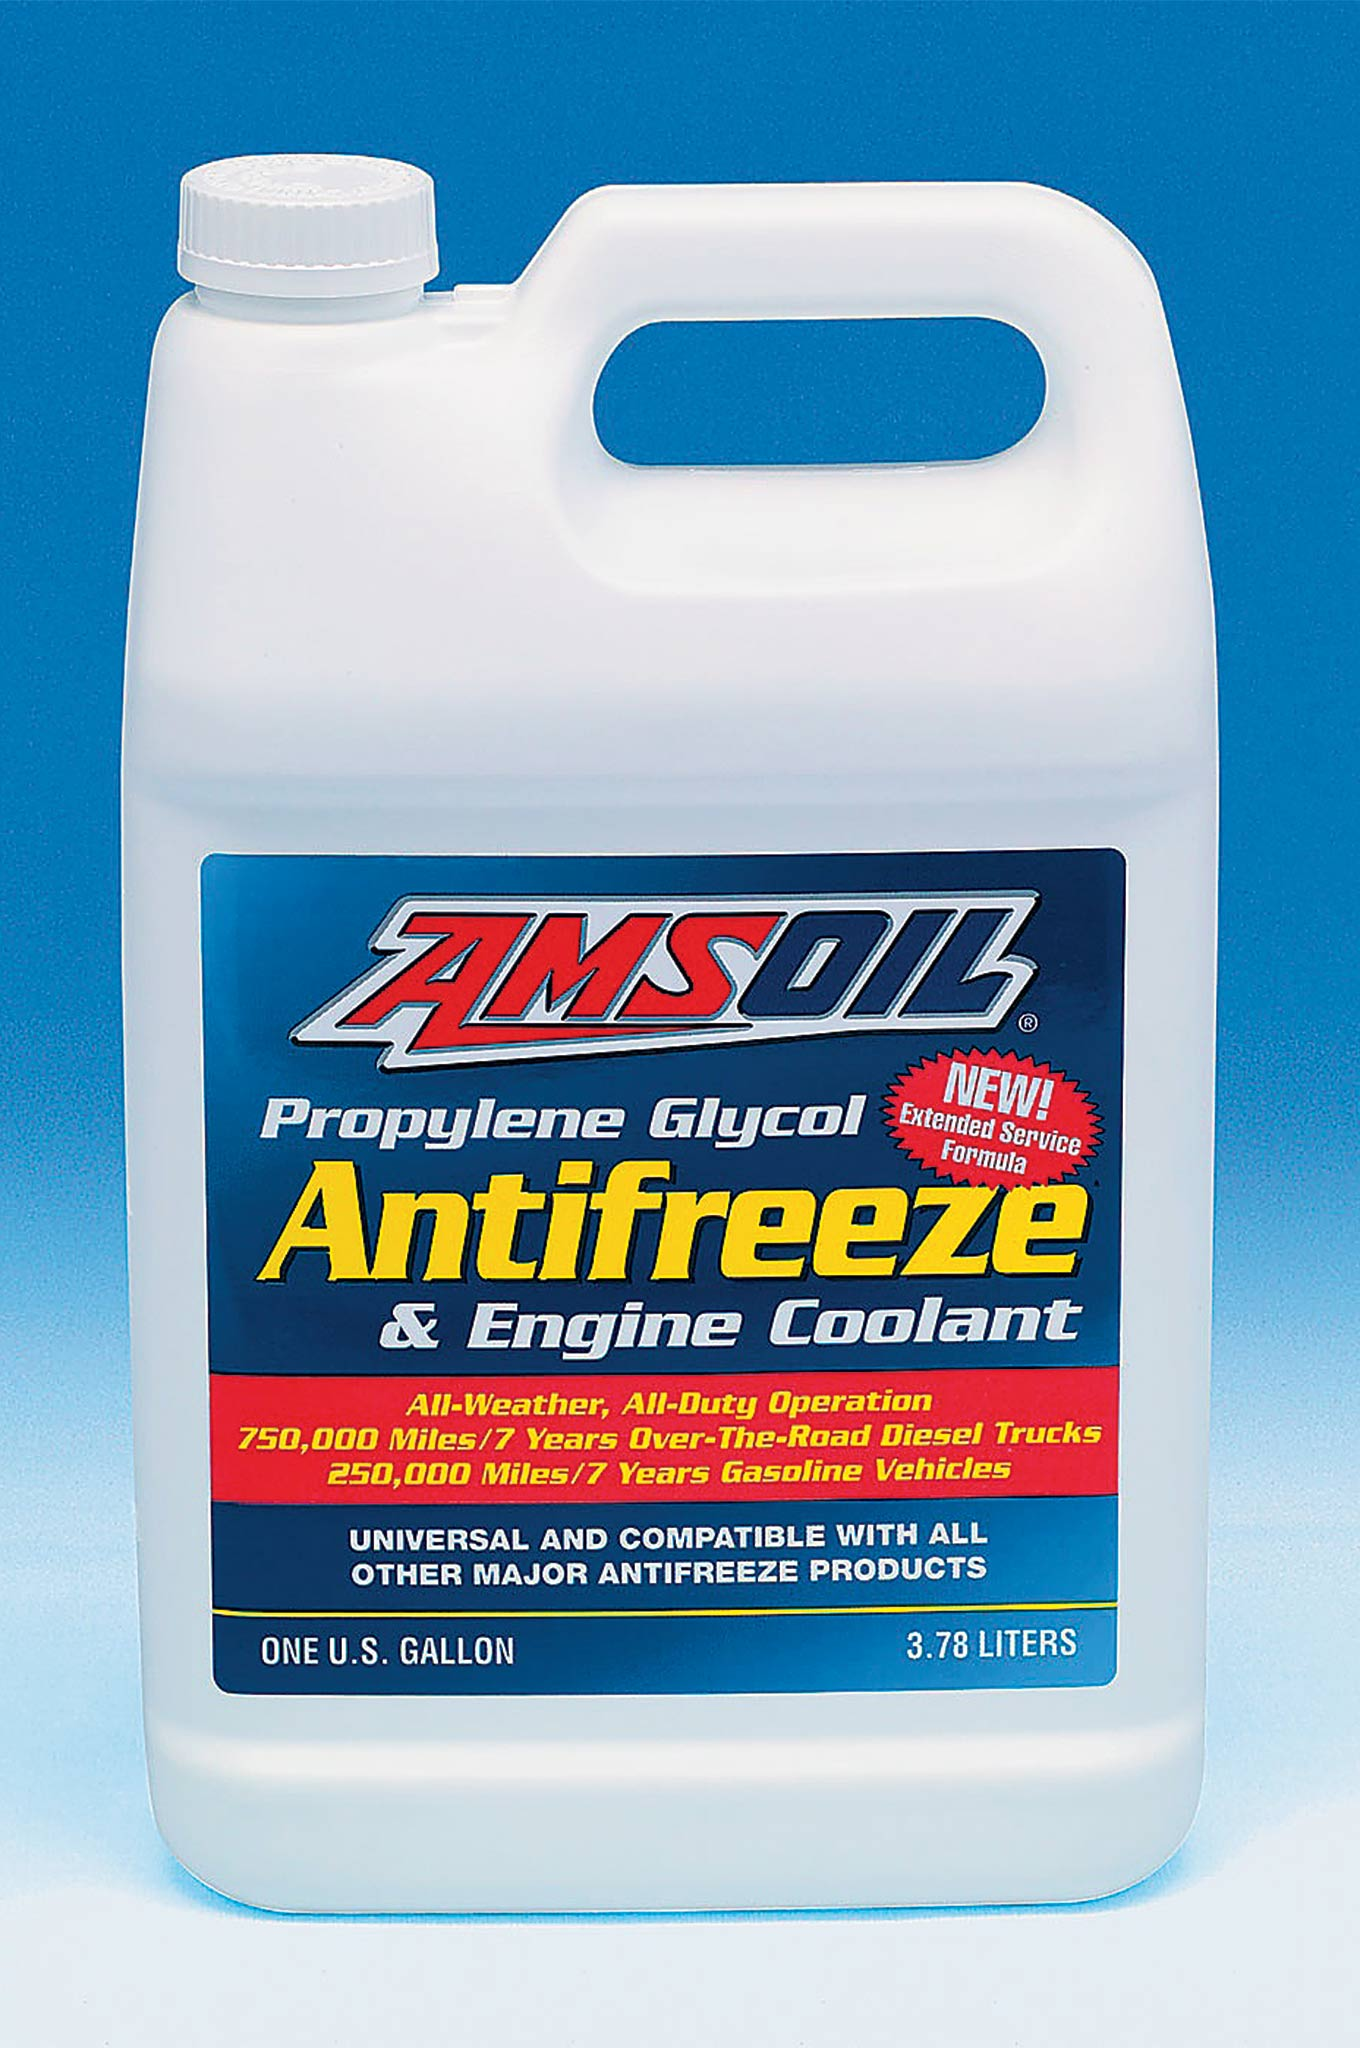 AMSOIL also offers Propylene Glycol Antifreeze and Coolant (ANT) that is biodegradable and its low toxicity limits poisoning risks. The unique organic acids that are used form a protective layer that prevents corrosion on metal components. Independent tests reveal it greatly surpasses standards for metallic corrosion and erosion, achieving nearly perfect scores in ASTM corrosion and erosion testing on cast aluminum cylinder heads, steel, copper, solder, brass, and cast iron and aluminum water pumps.